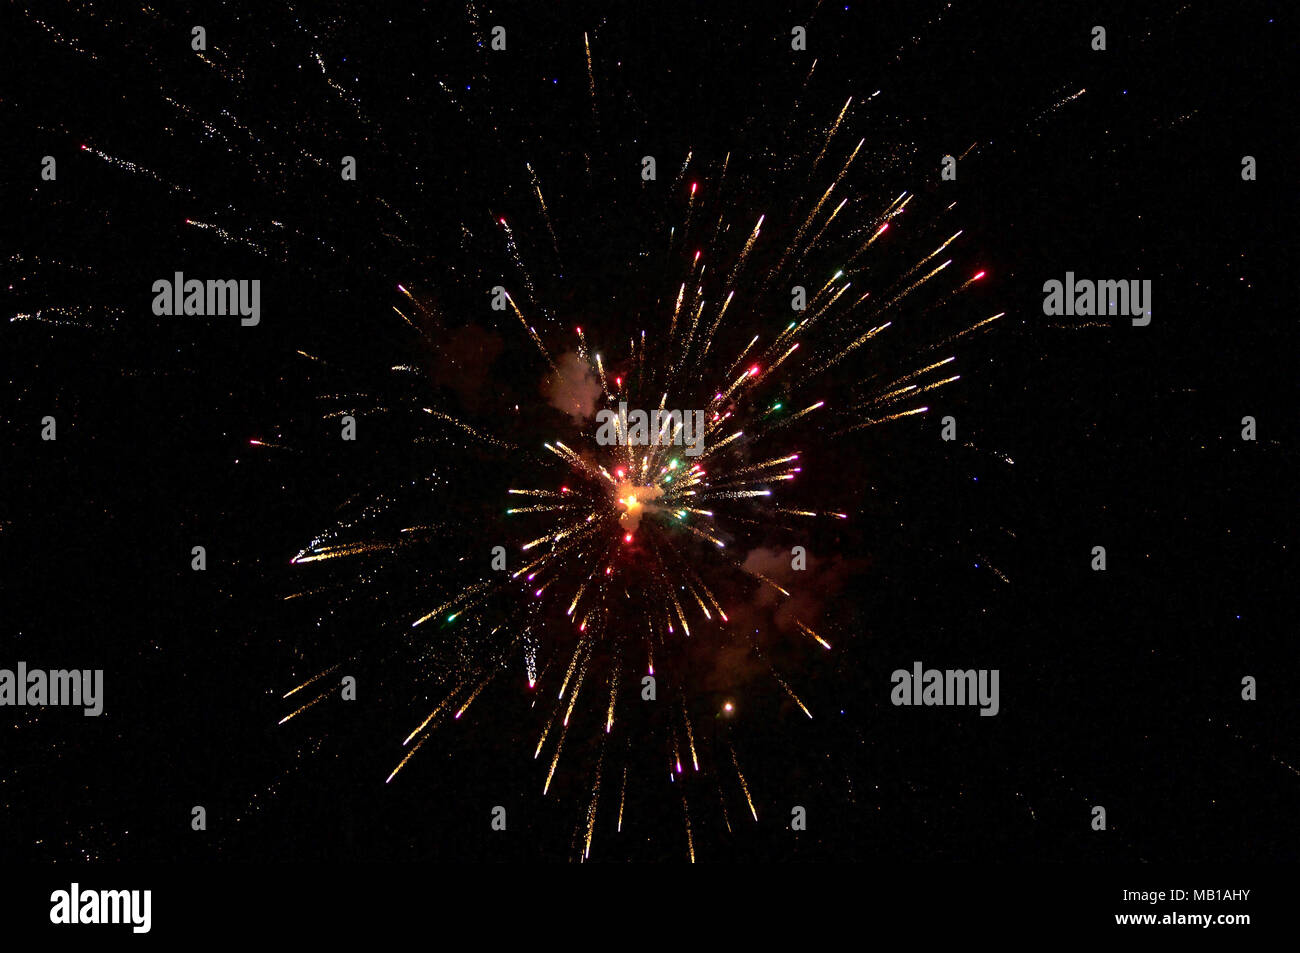 New year's fireworks at the beach - Stock Image